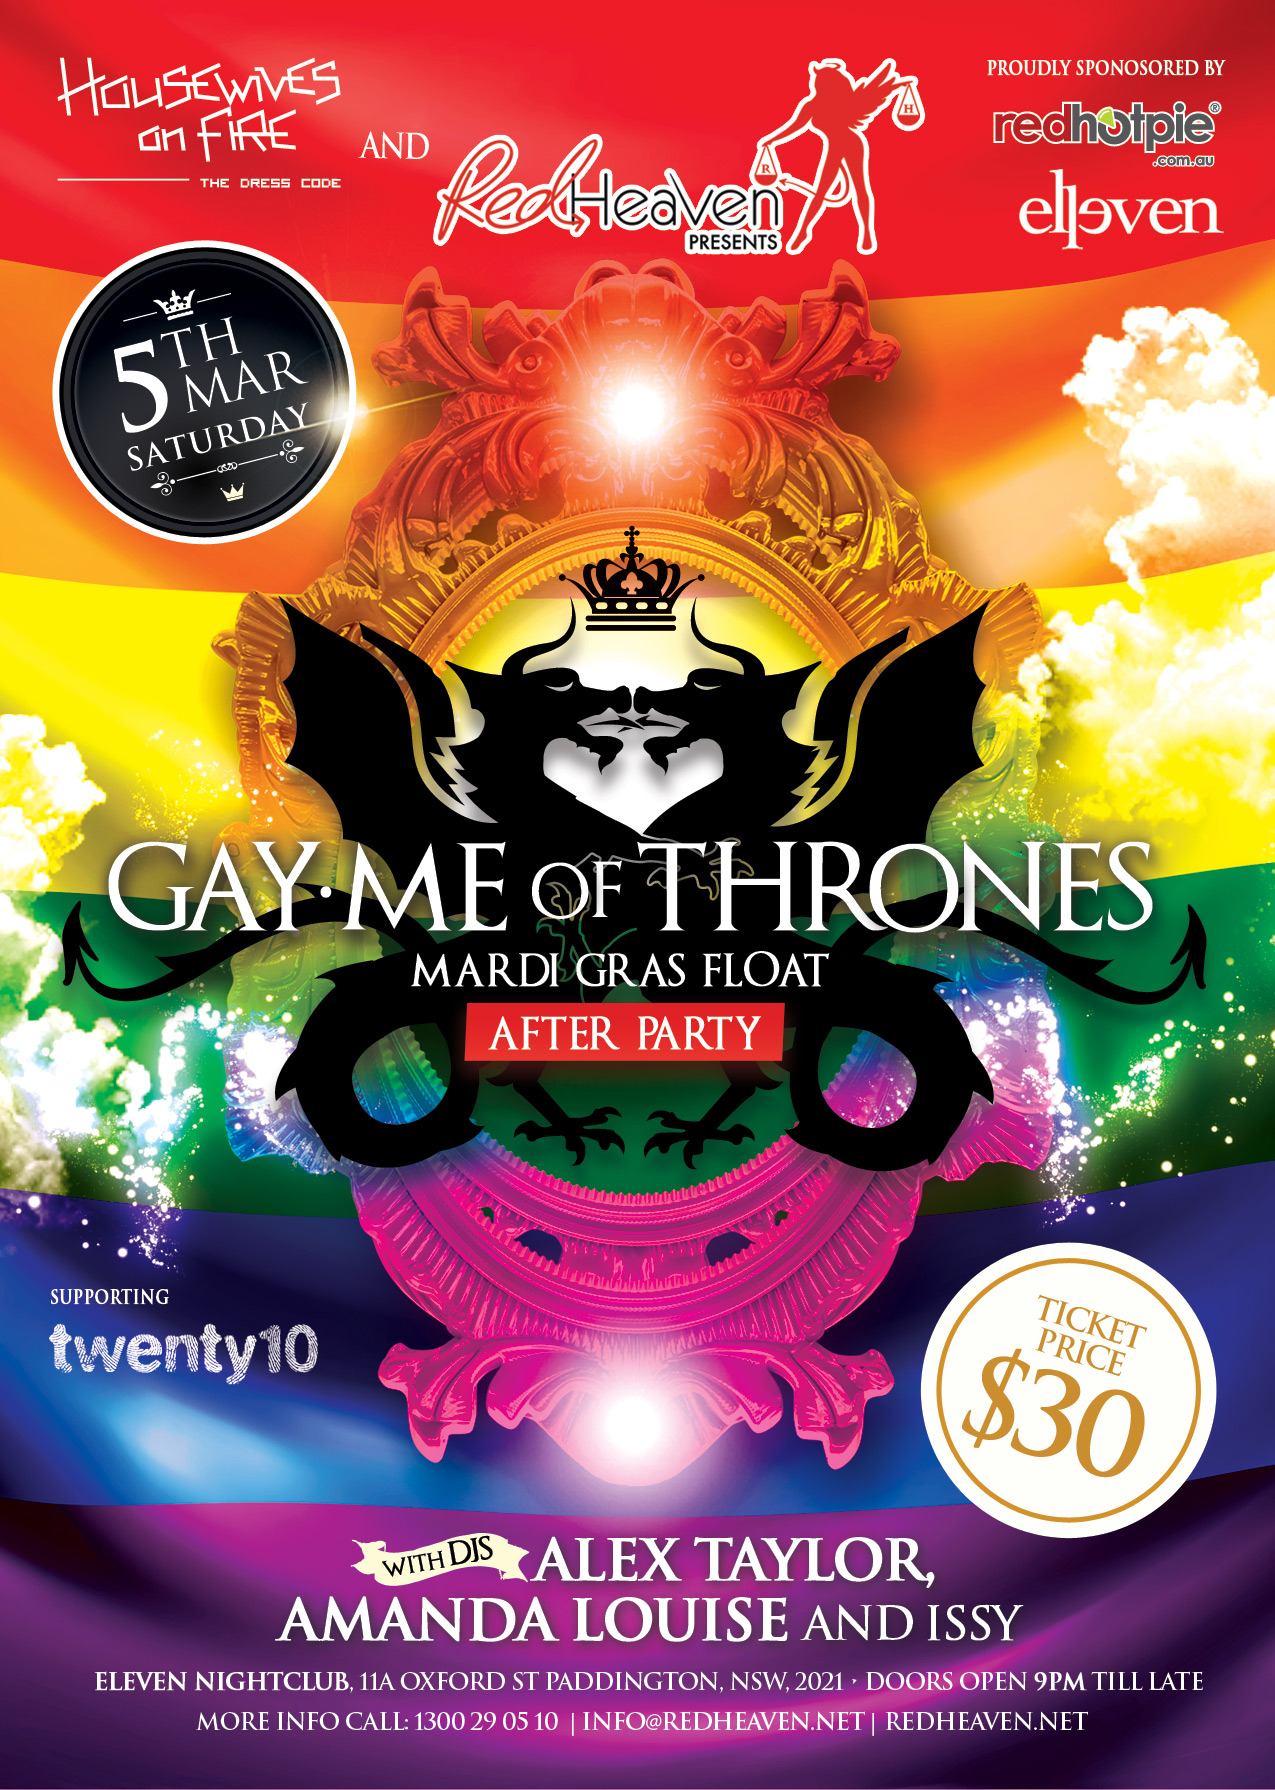 Gay.me of Thrones - A4Flyer